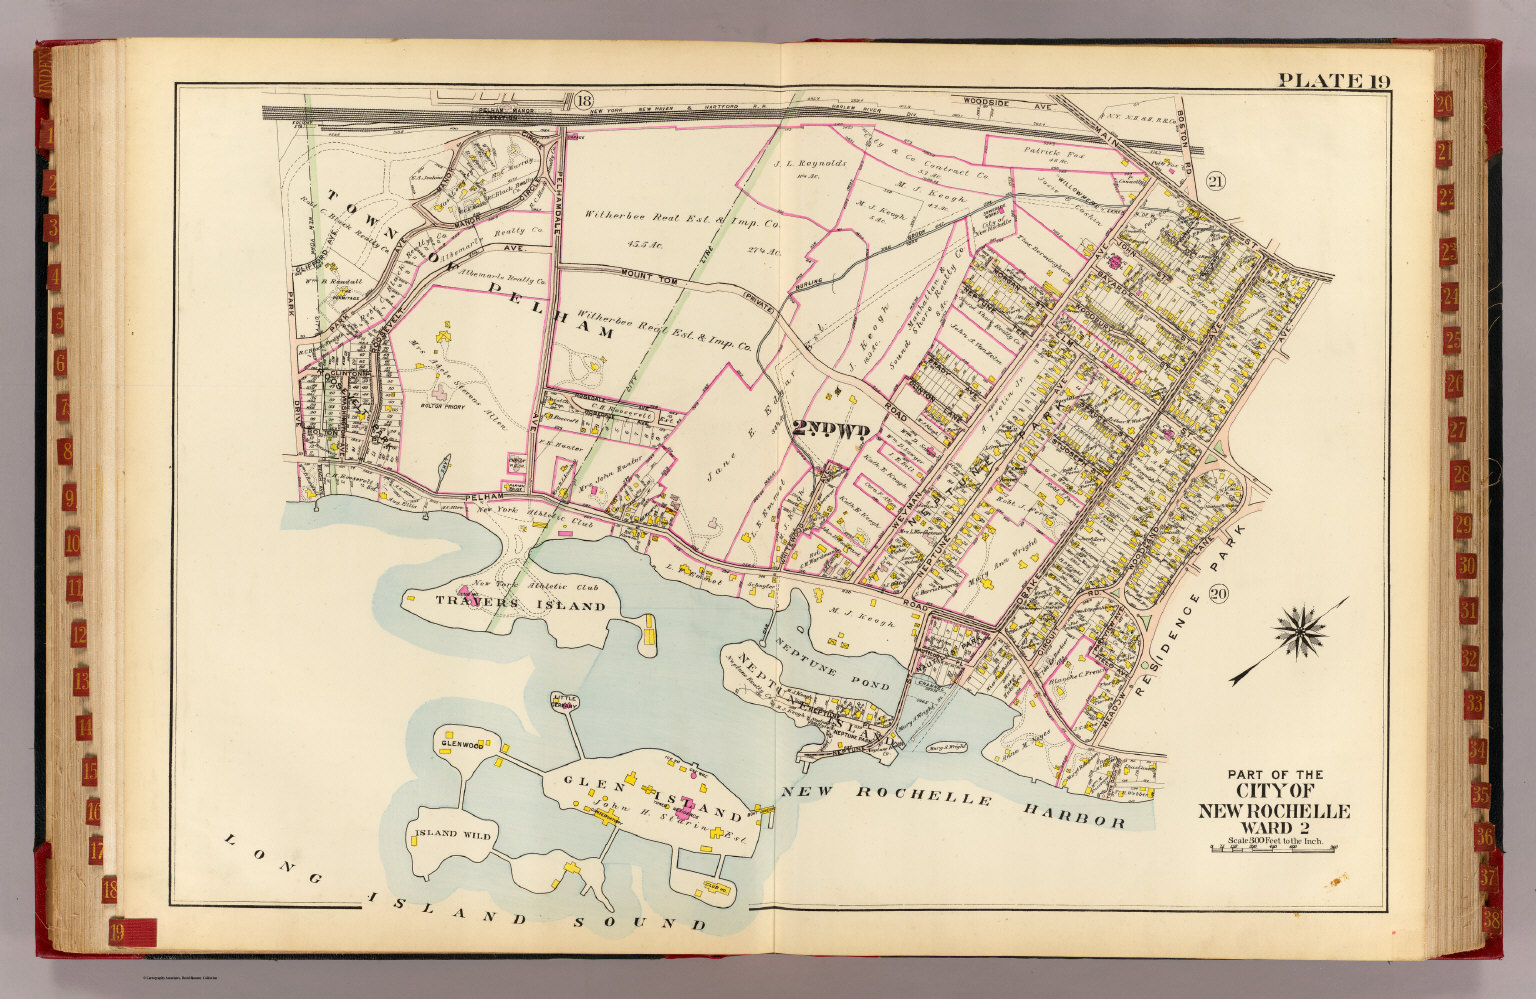 New Rochelle ward 2 David Rumsey Historical Map Collection